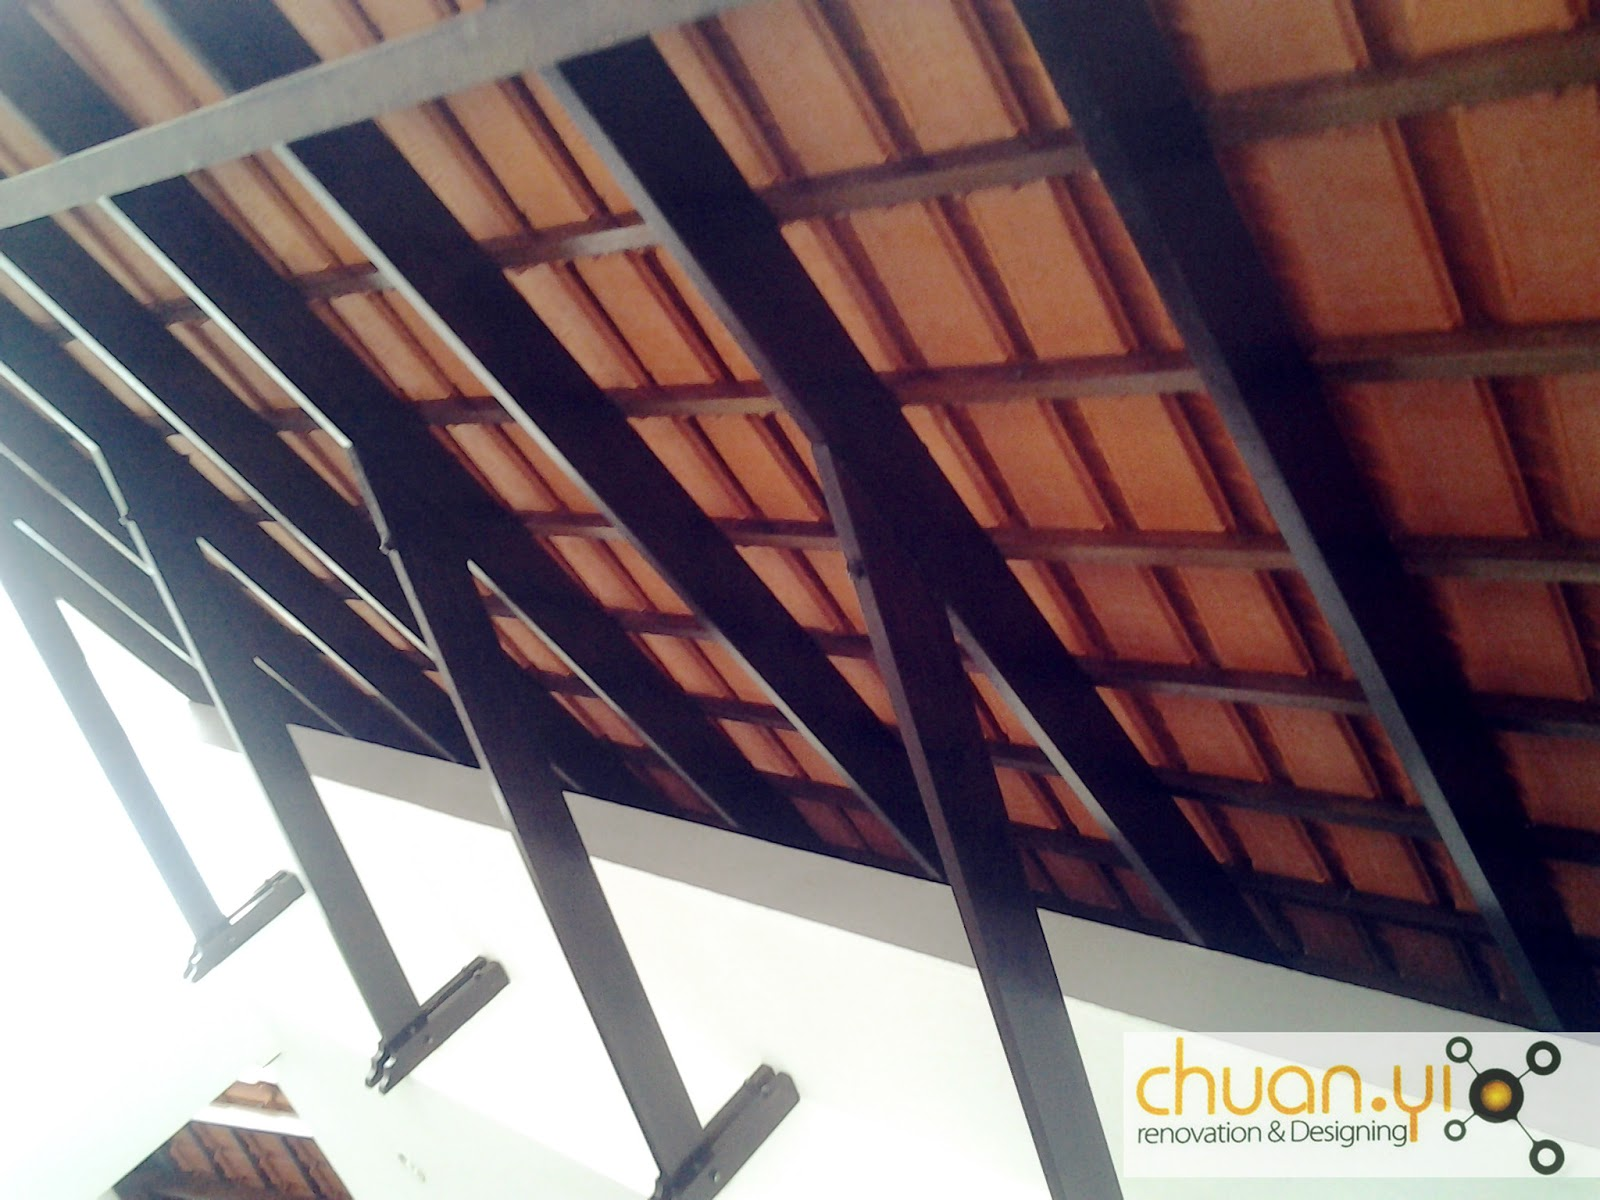 Chuan yi construction renovation sdn bhd january 2012 for Car porch roof